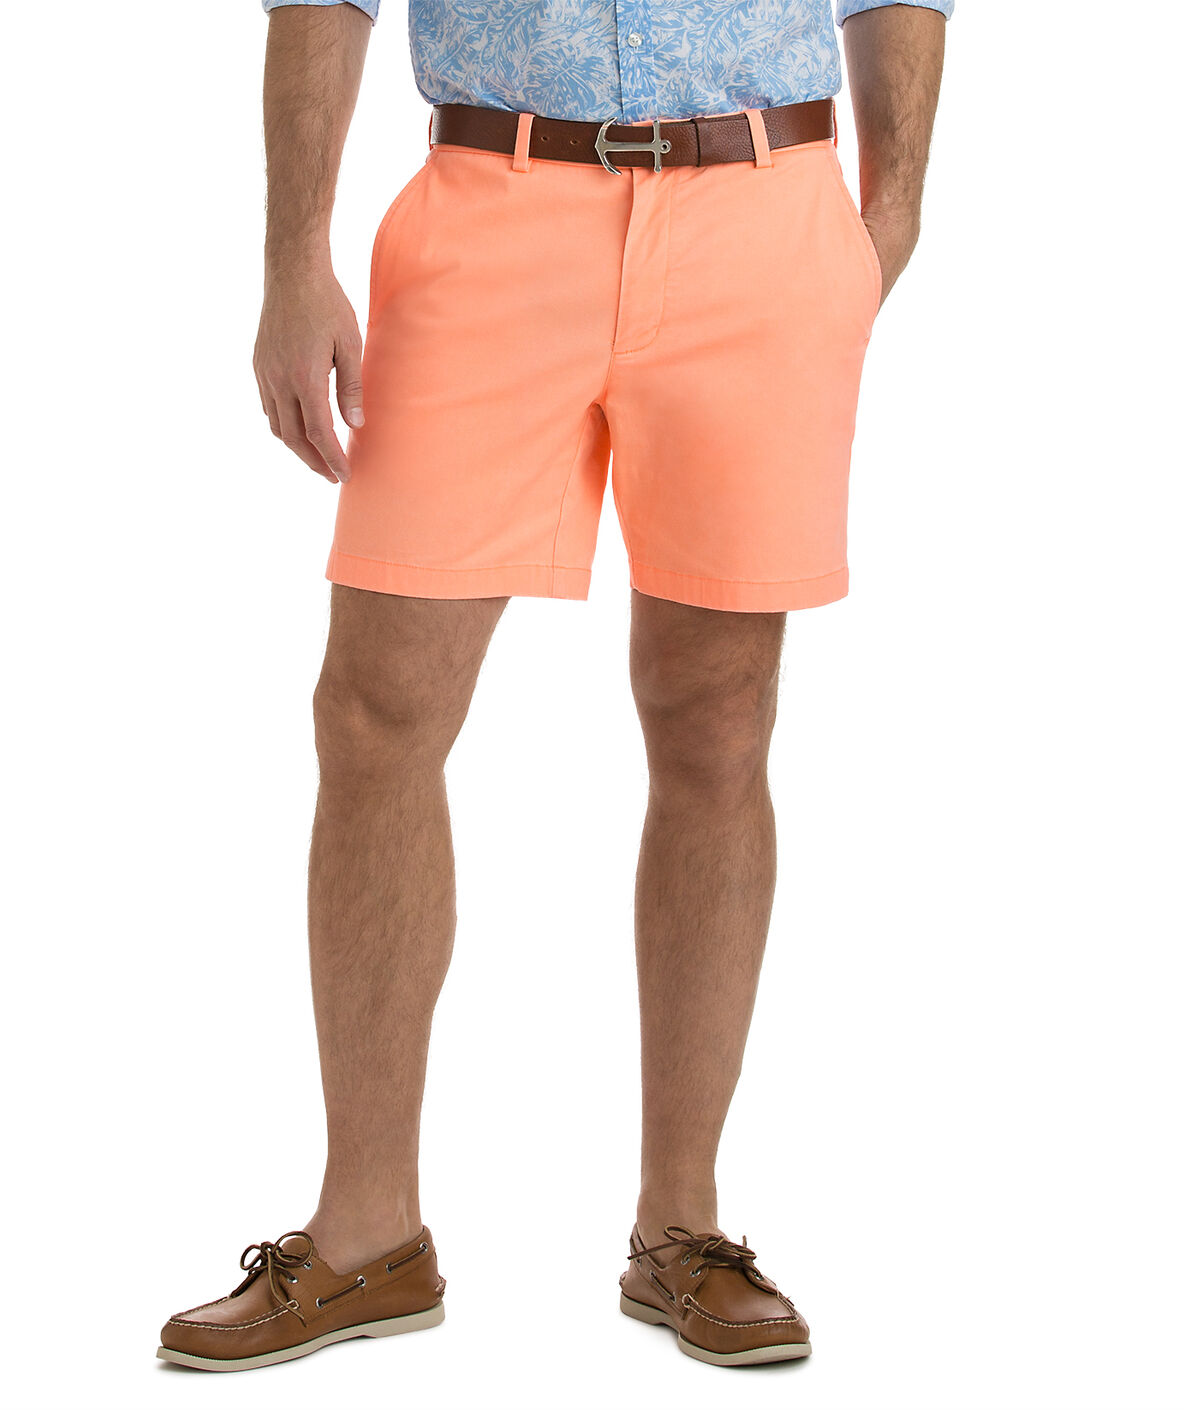 Preppy Men's Shorts - Embroidered Shorts at vineyard vines